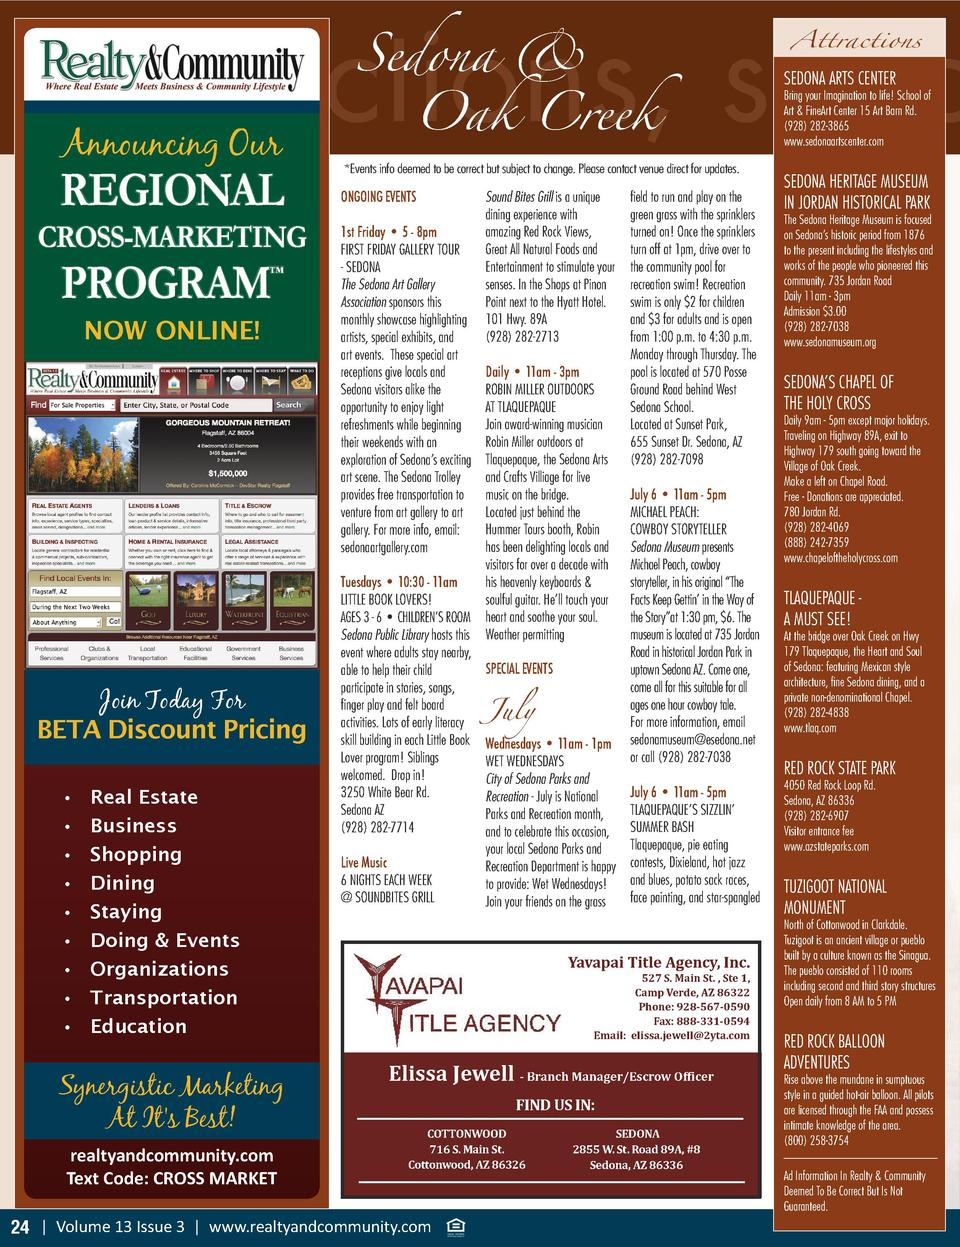 Sedona    attractions, spec  Announcing Our  REGIONAL CROSS-MARKETING  PROGRAM       NOW ONLINE   Join Today For BETA Disc...